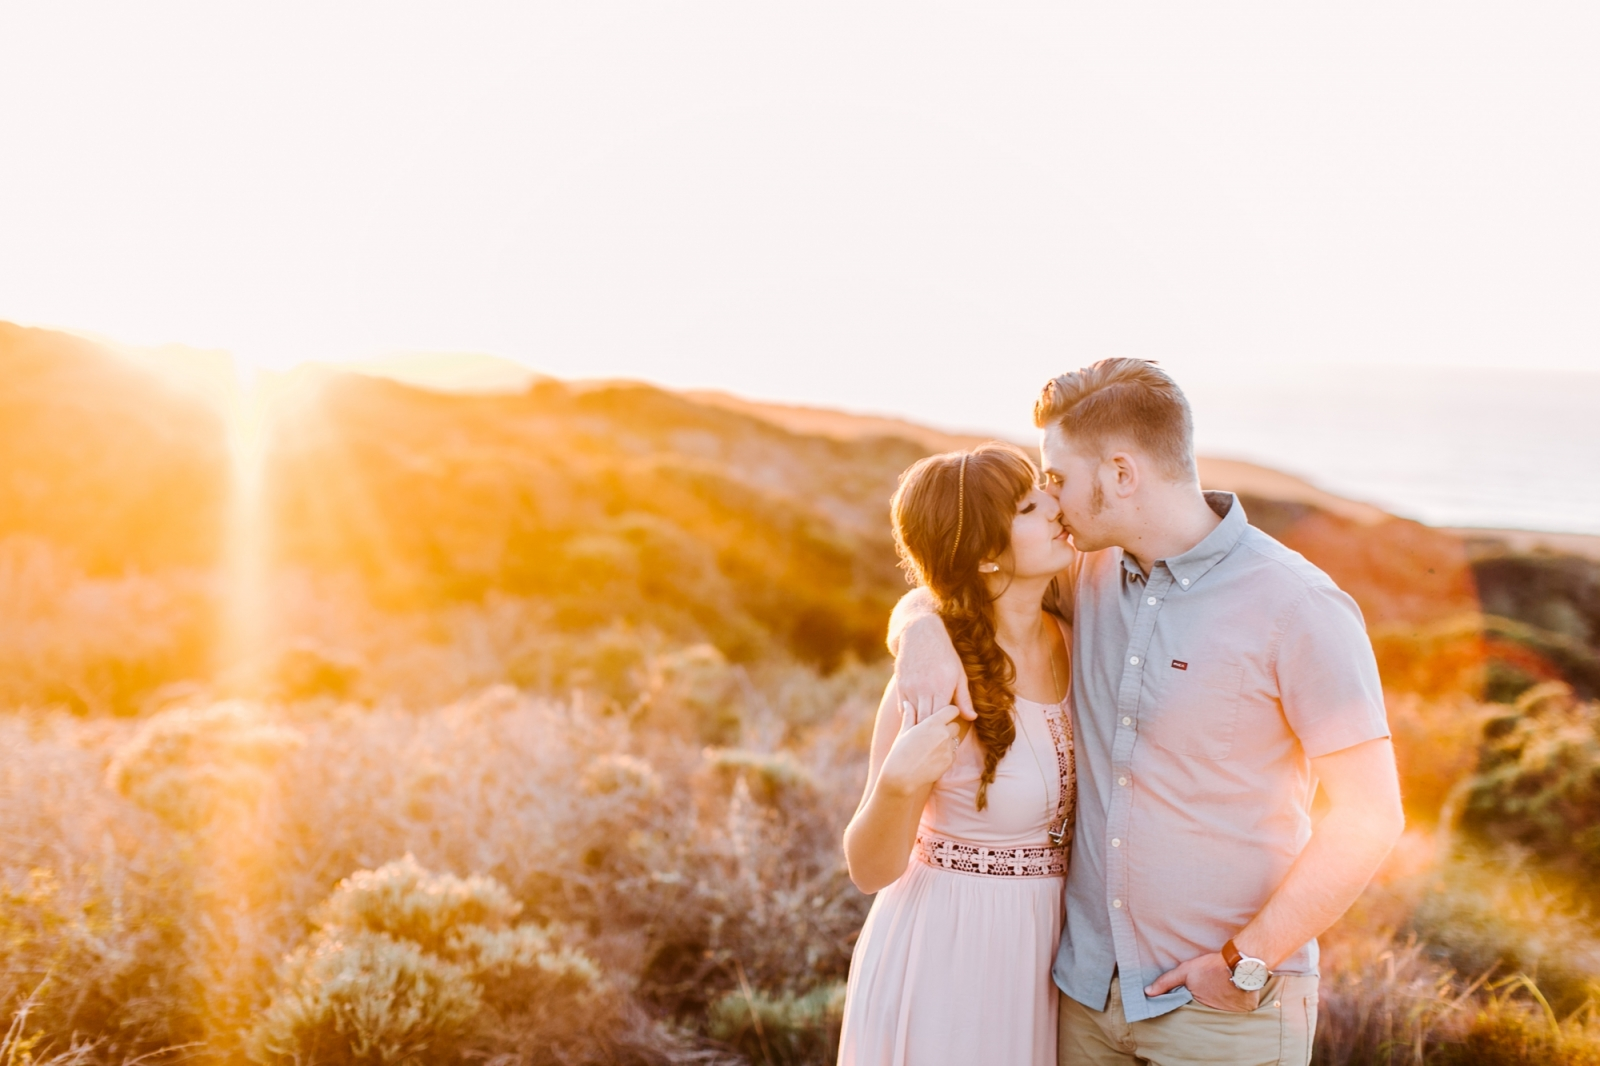 Anniversary engagement session photos by Jessica Sofranko